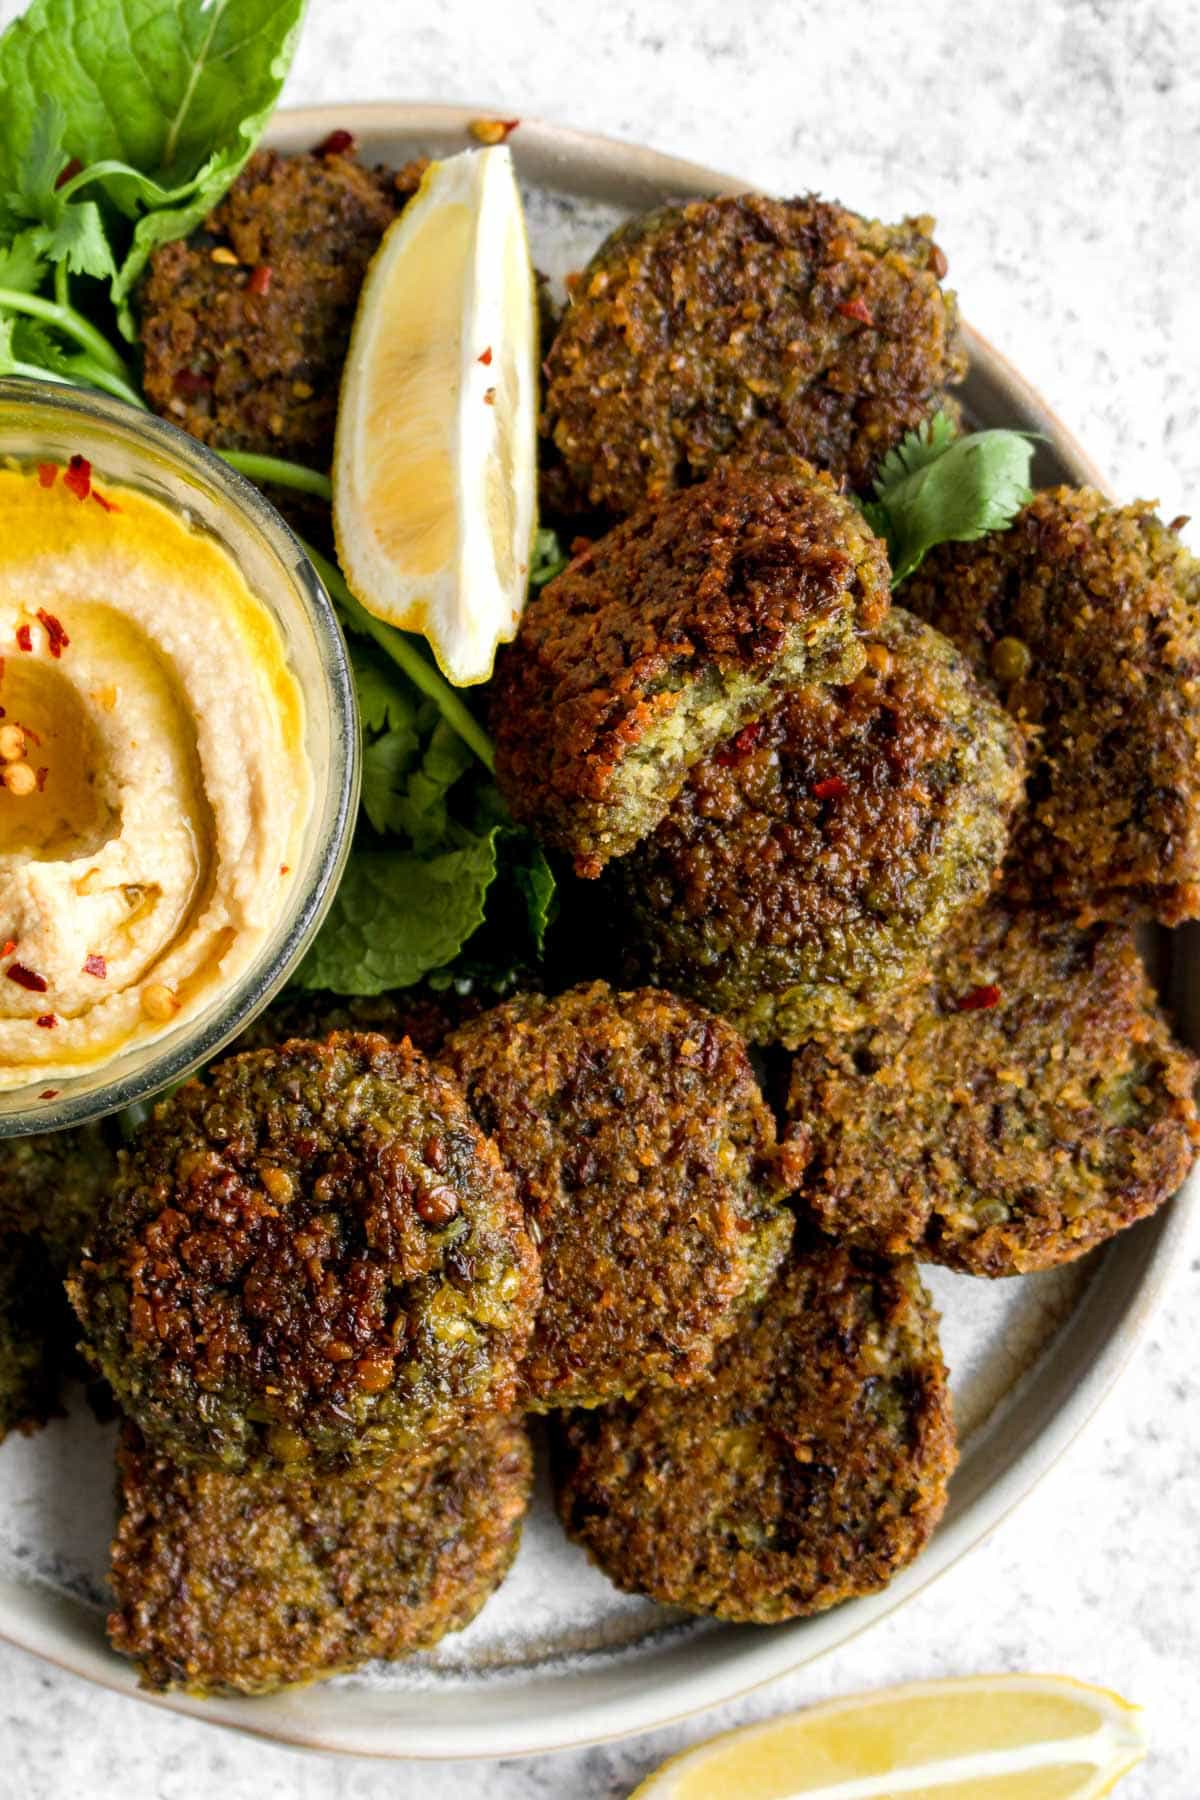 A plate of baked lentil falafel with hummus, cilantro, and mint.